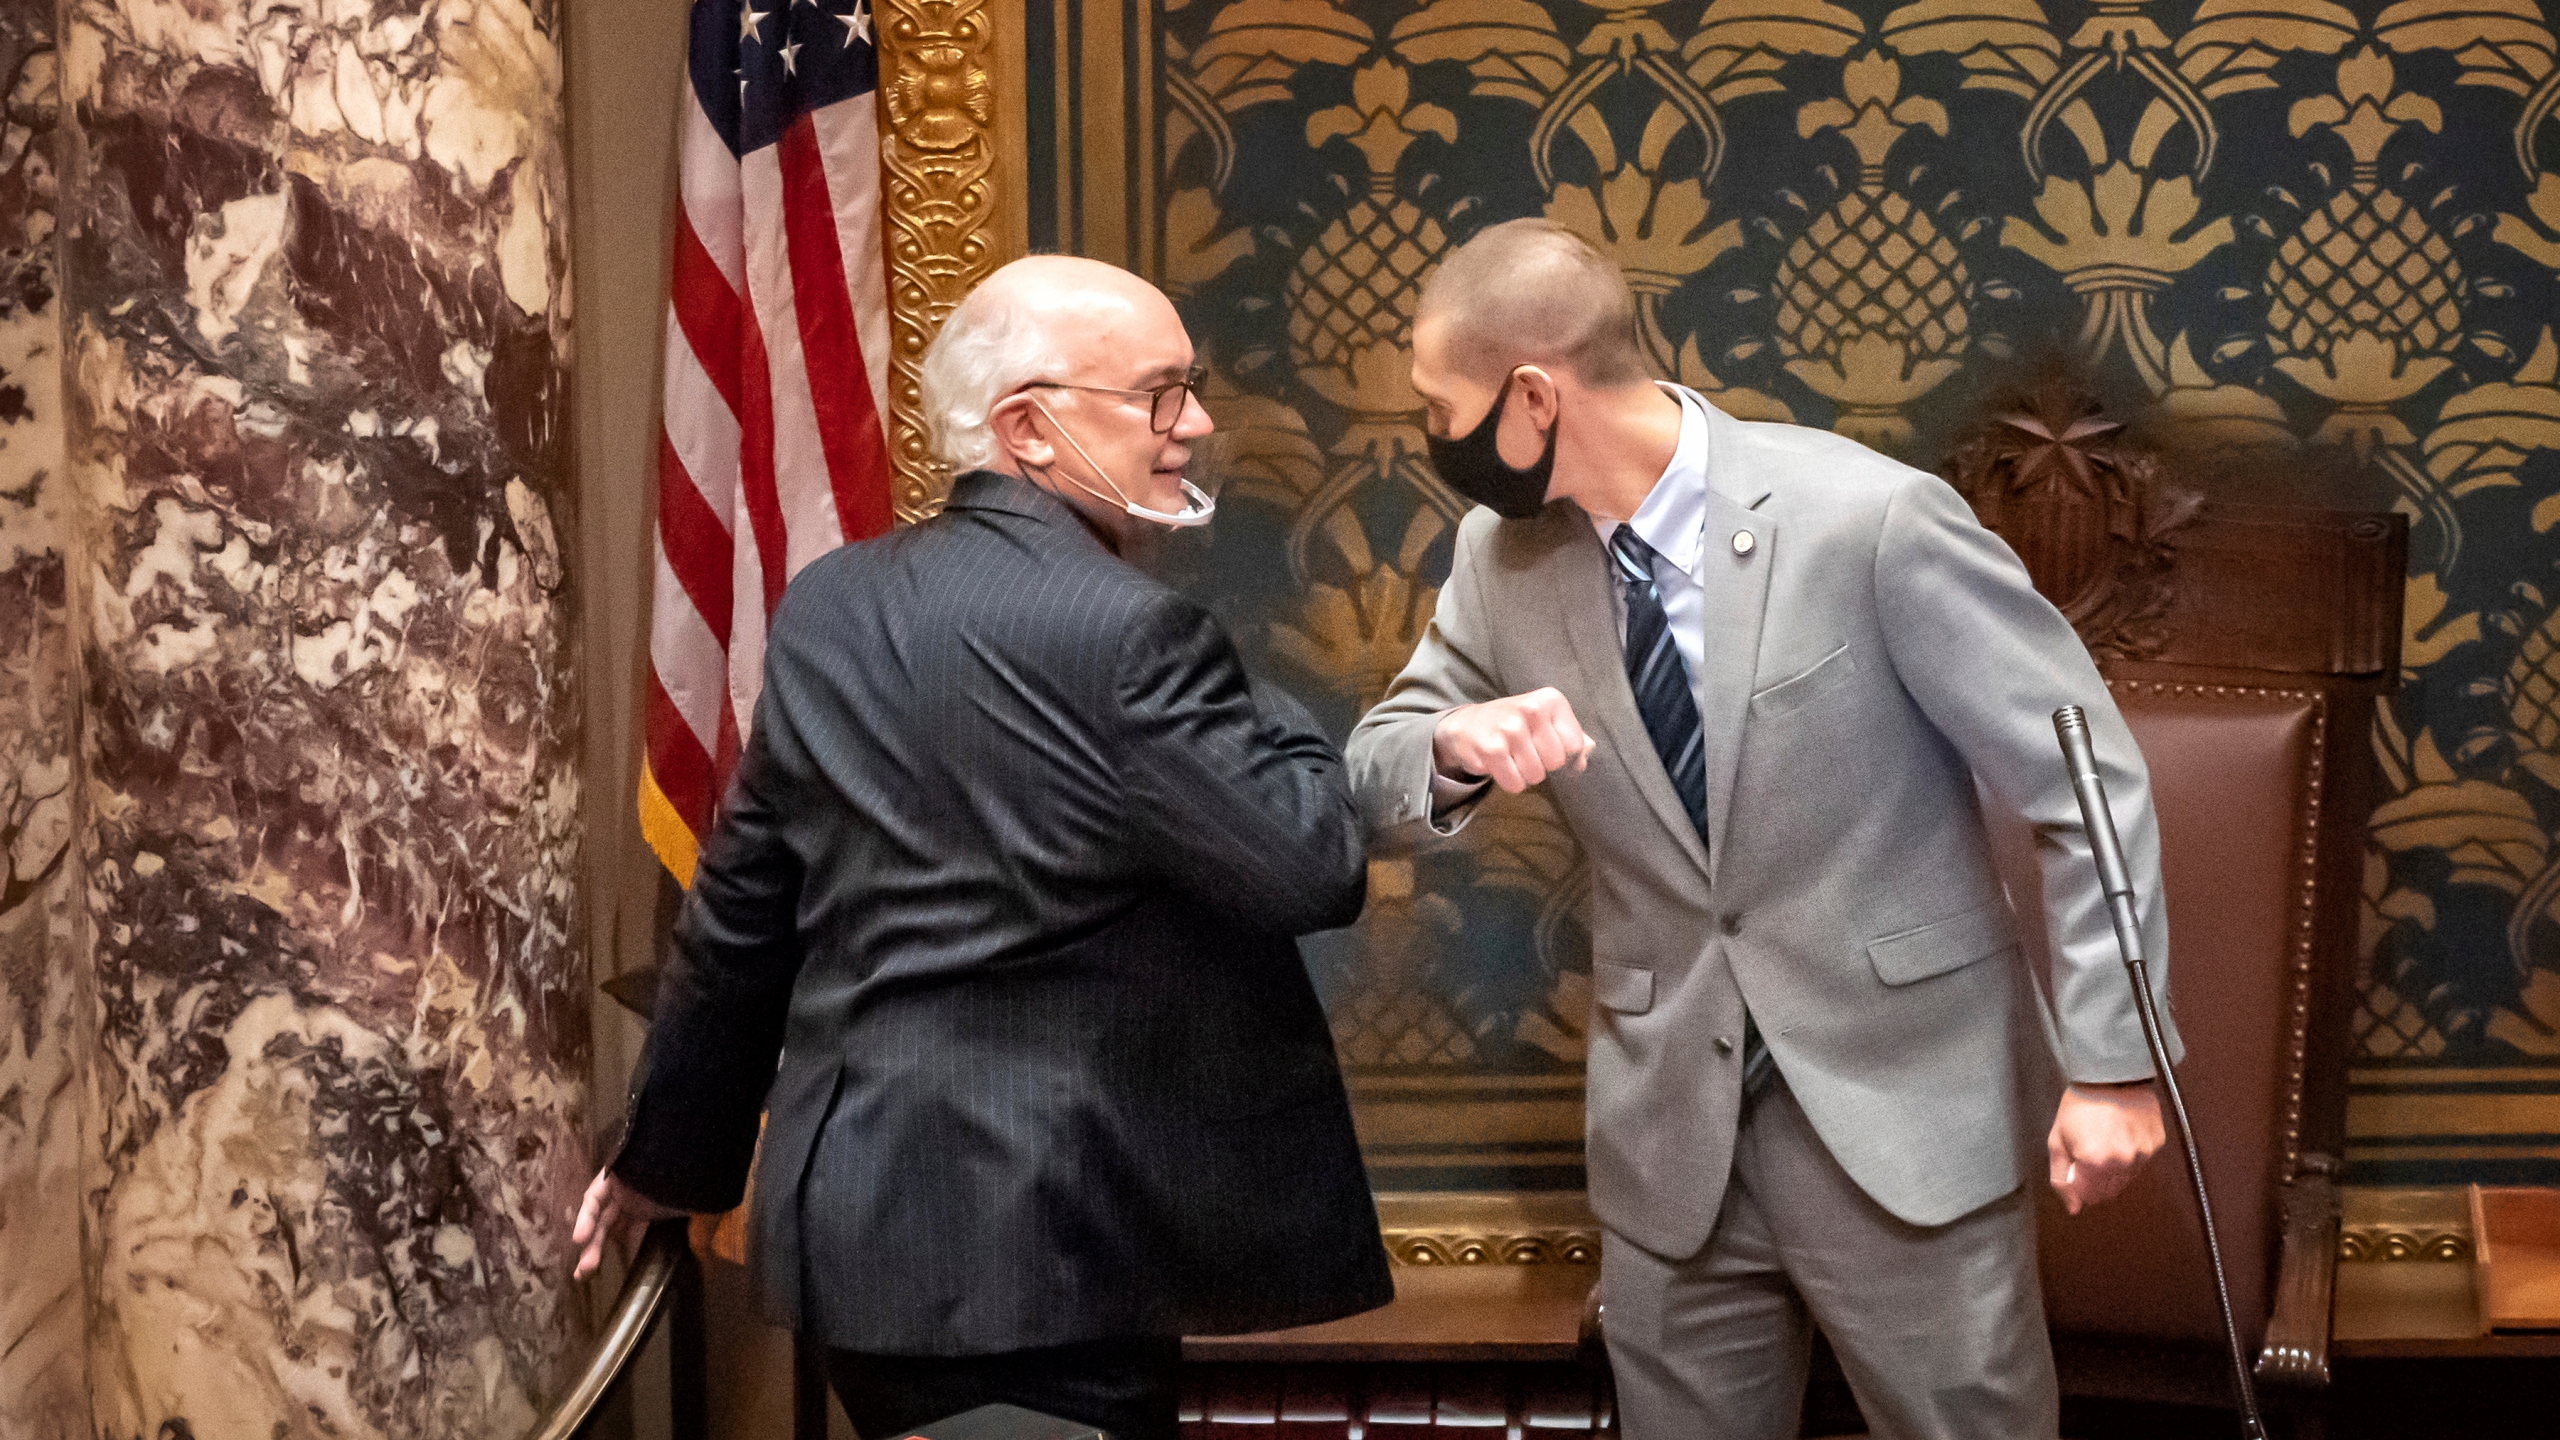 In this Nov. 12, 2020 file photo, outgoing Minnesota State Senate President Senate President Jeremy Miller, R-Winona gave Sen. David Tomassoni, DFL-Chisholm a congratulatory elbow bump before Tomassoni addressed the Senate Chamber in St. Paul, Minn. At least 187 state legislators nationwide have tested positive for the virus and four have died since the pandemic began, according to figures compiled by The Associated Press. Twelve Arkansas lawmakers have tested positive for the virus over the past month, the second largest known outbreak in a state legislature. (Glen Stubbe/Star Tribune via AP)